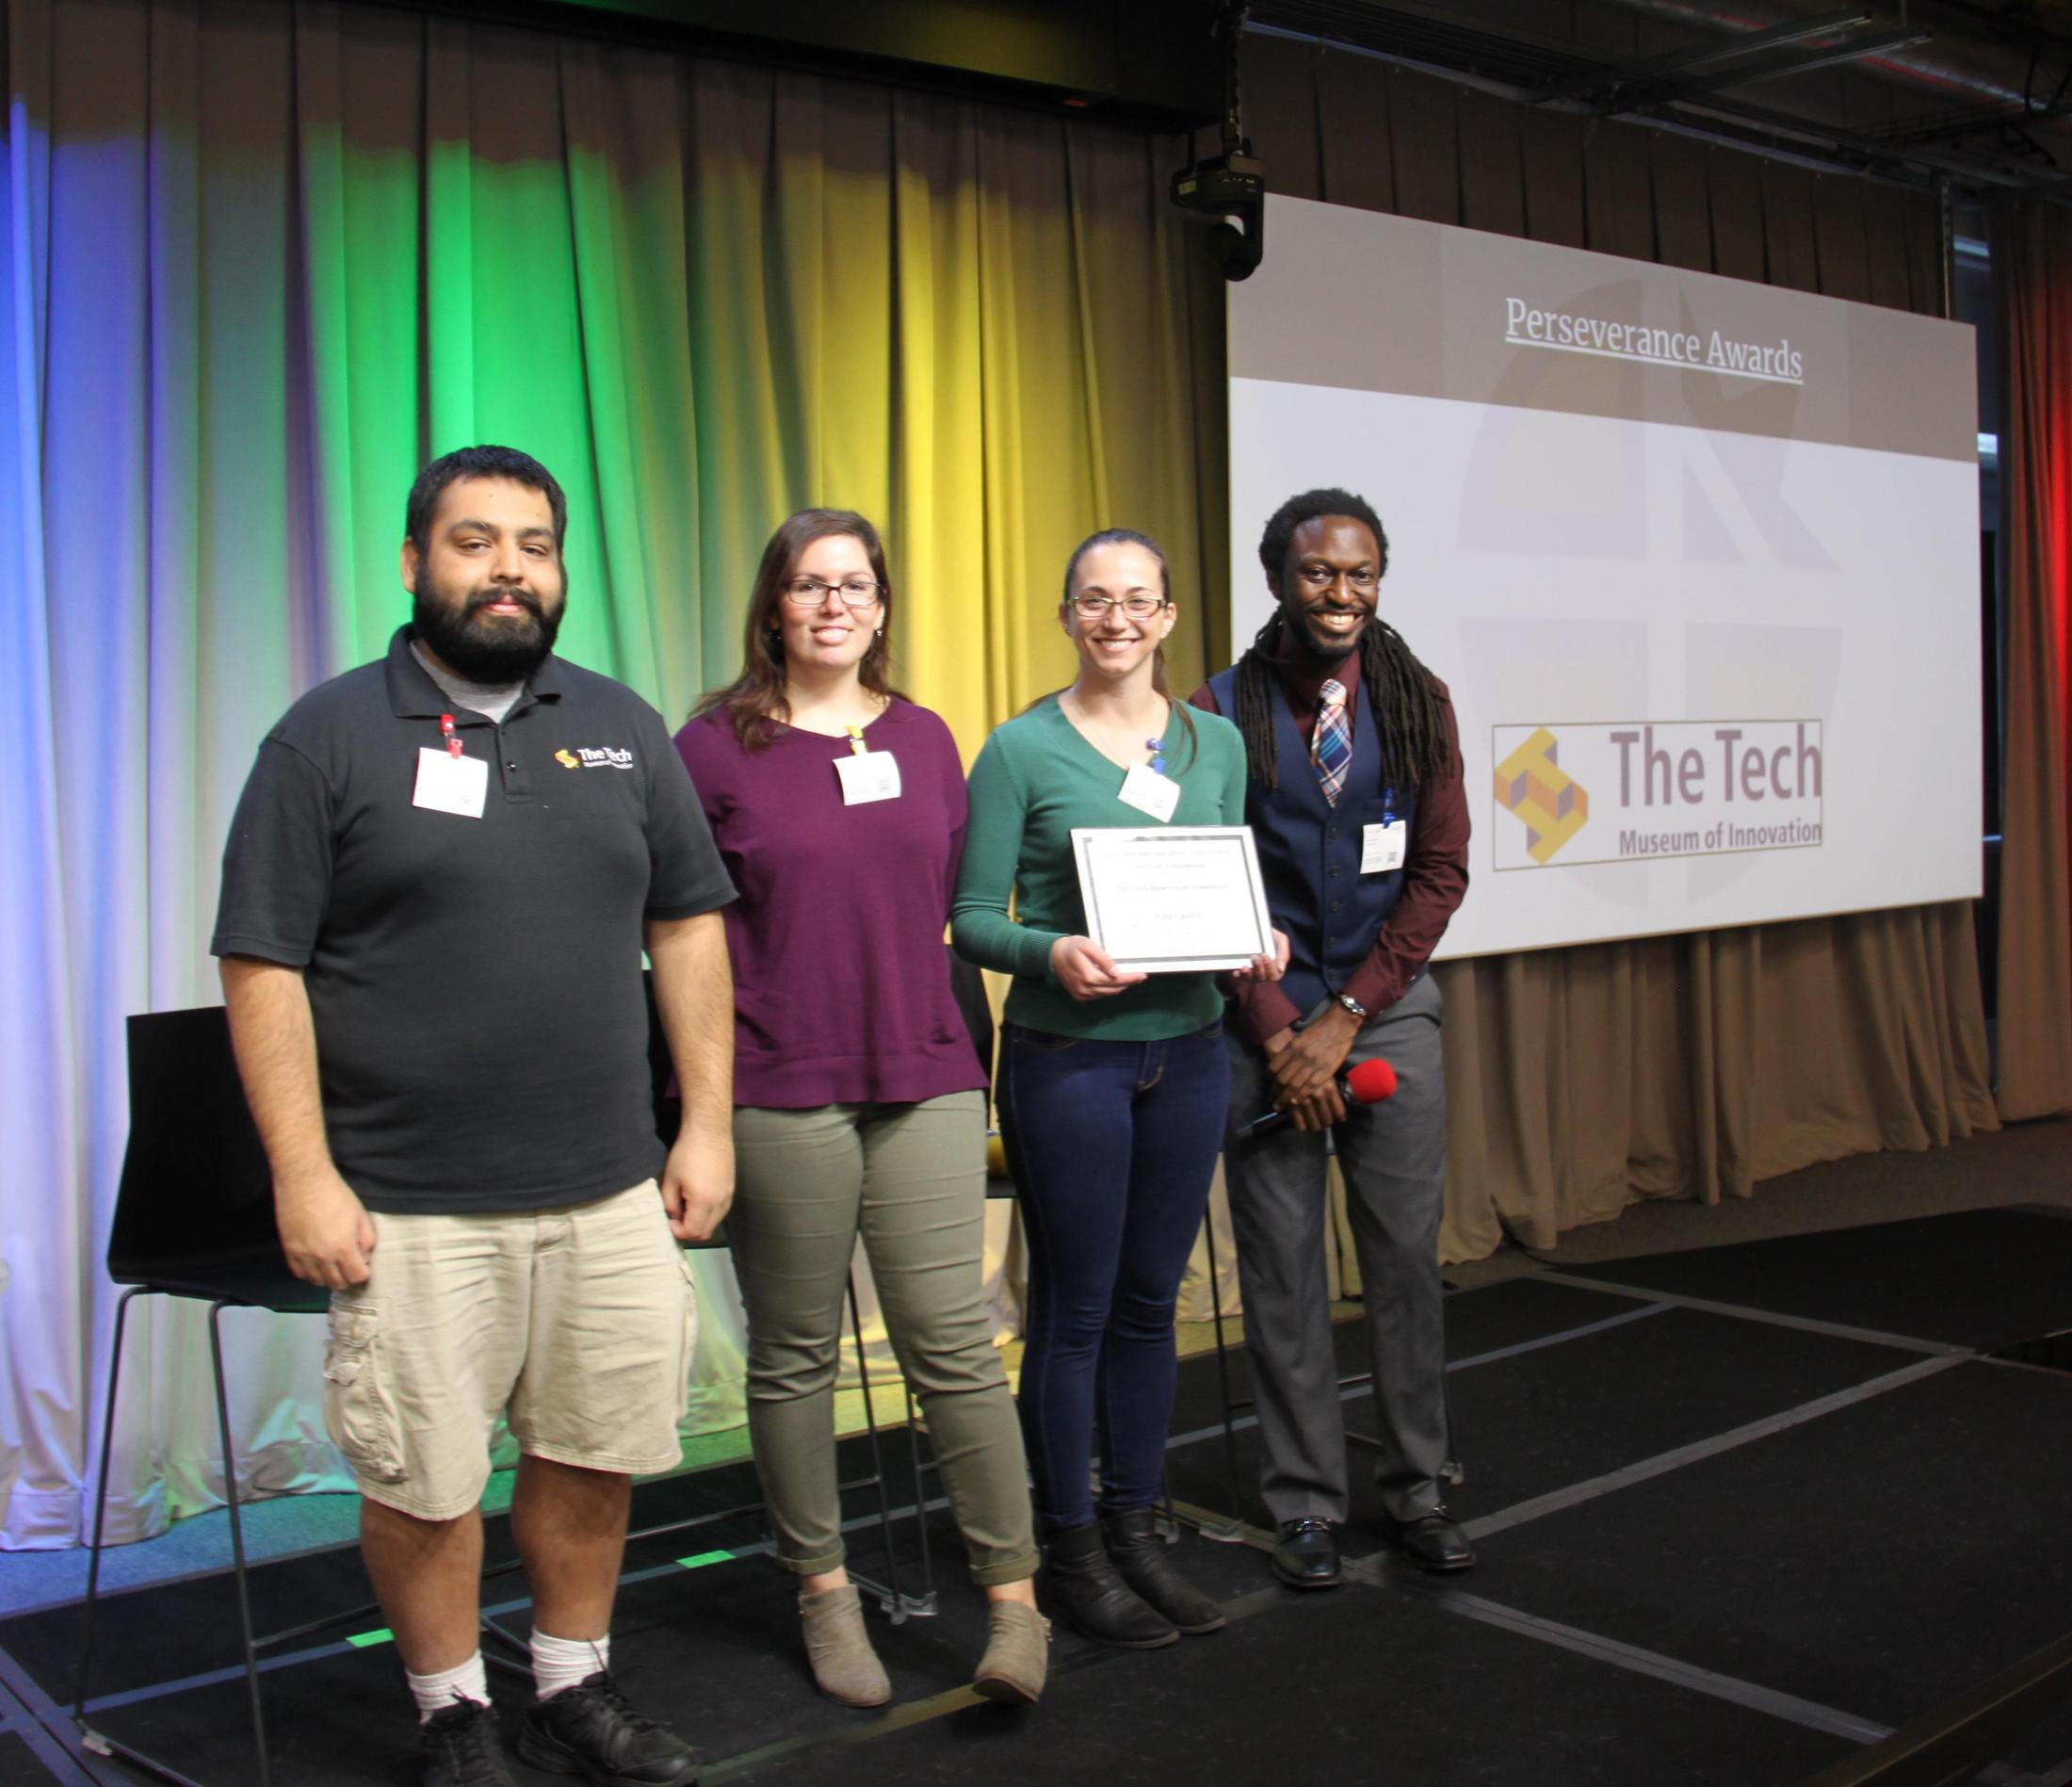 Perseverance Awards - The Tech Museum of Innovation and